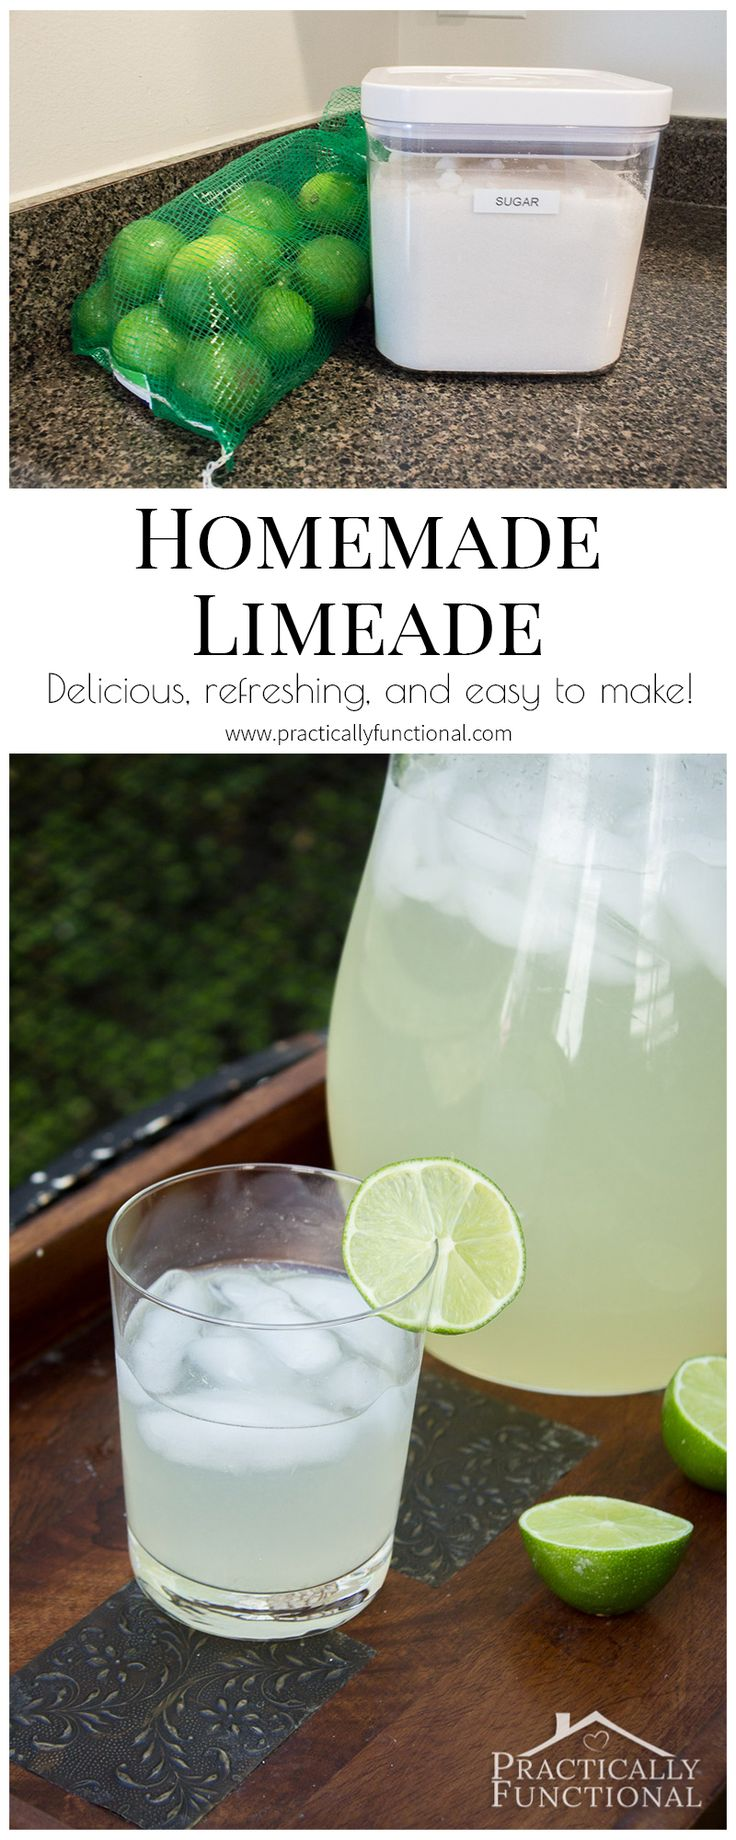 This homemade limeade recipe is delicious, refreshing, and so easy to make!